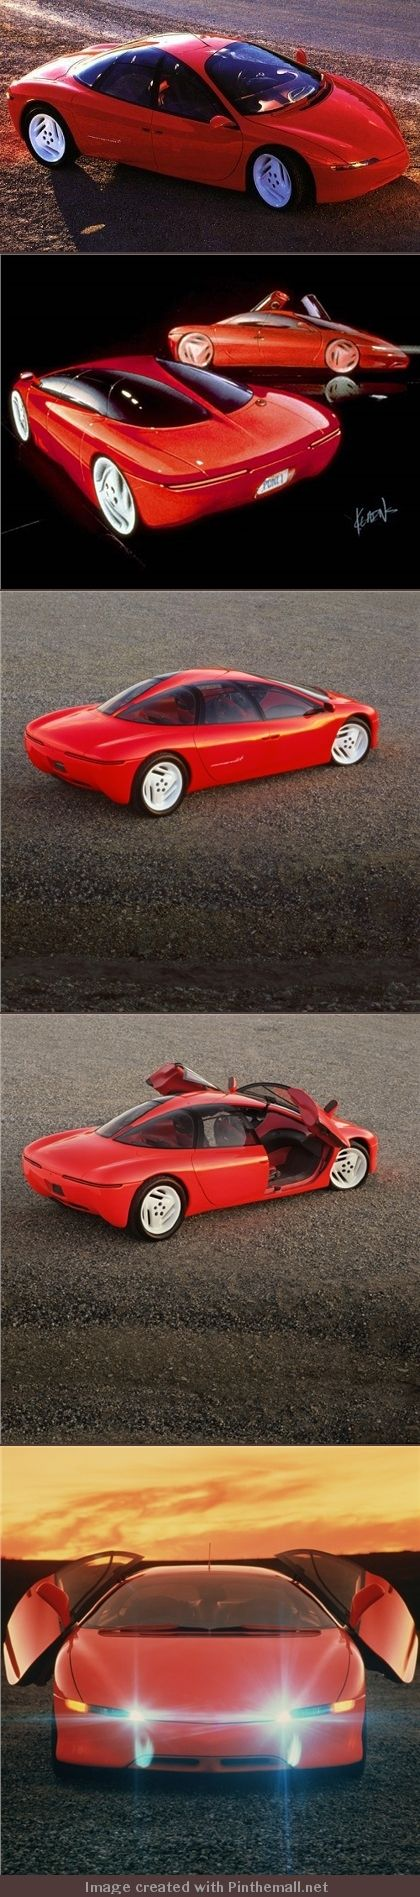 The pontiac protosport is a concept car that offers comfort for four people while providing performance and handling normally achieved only in sports cars